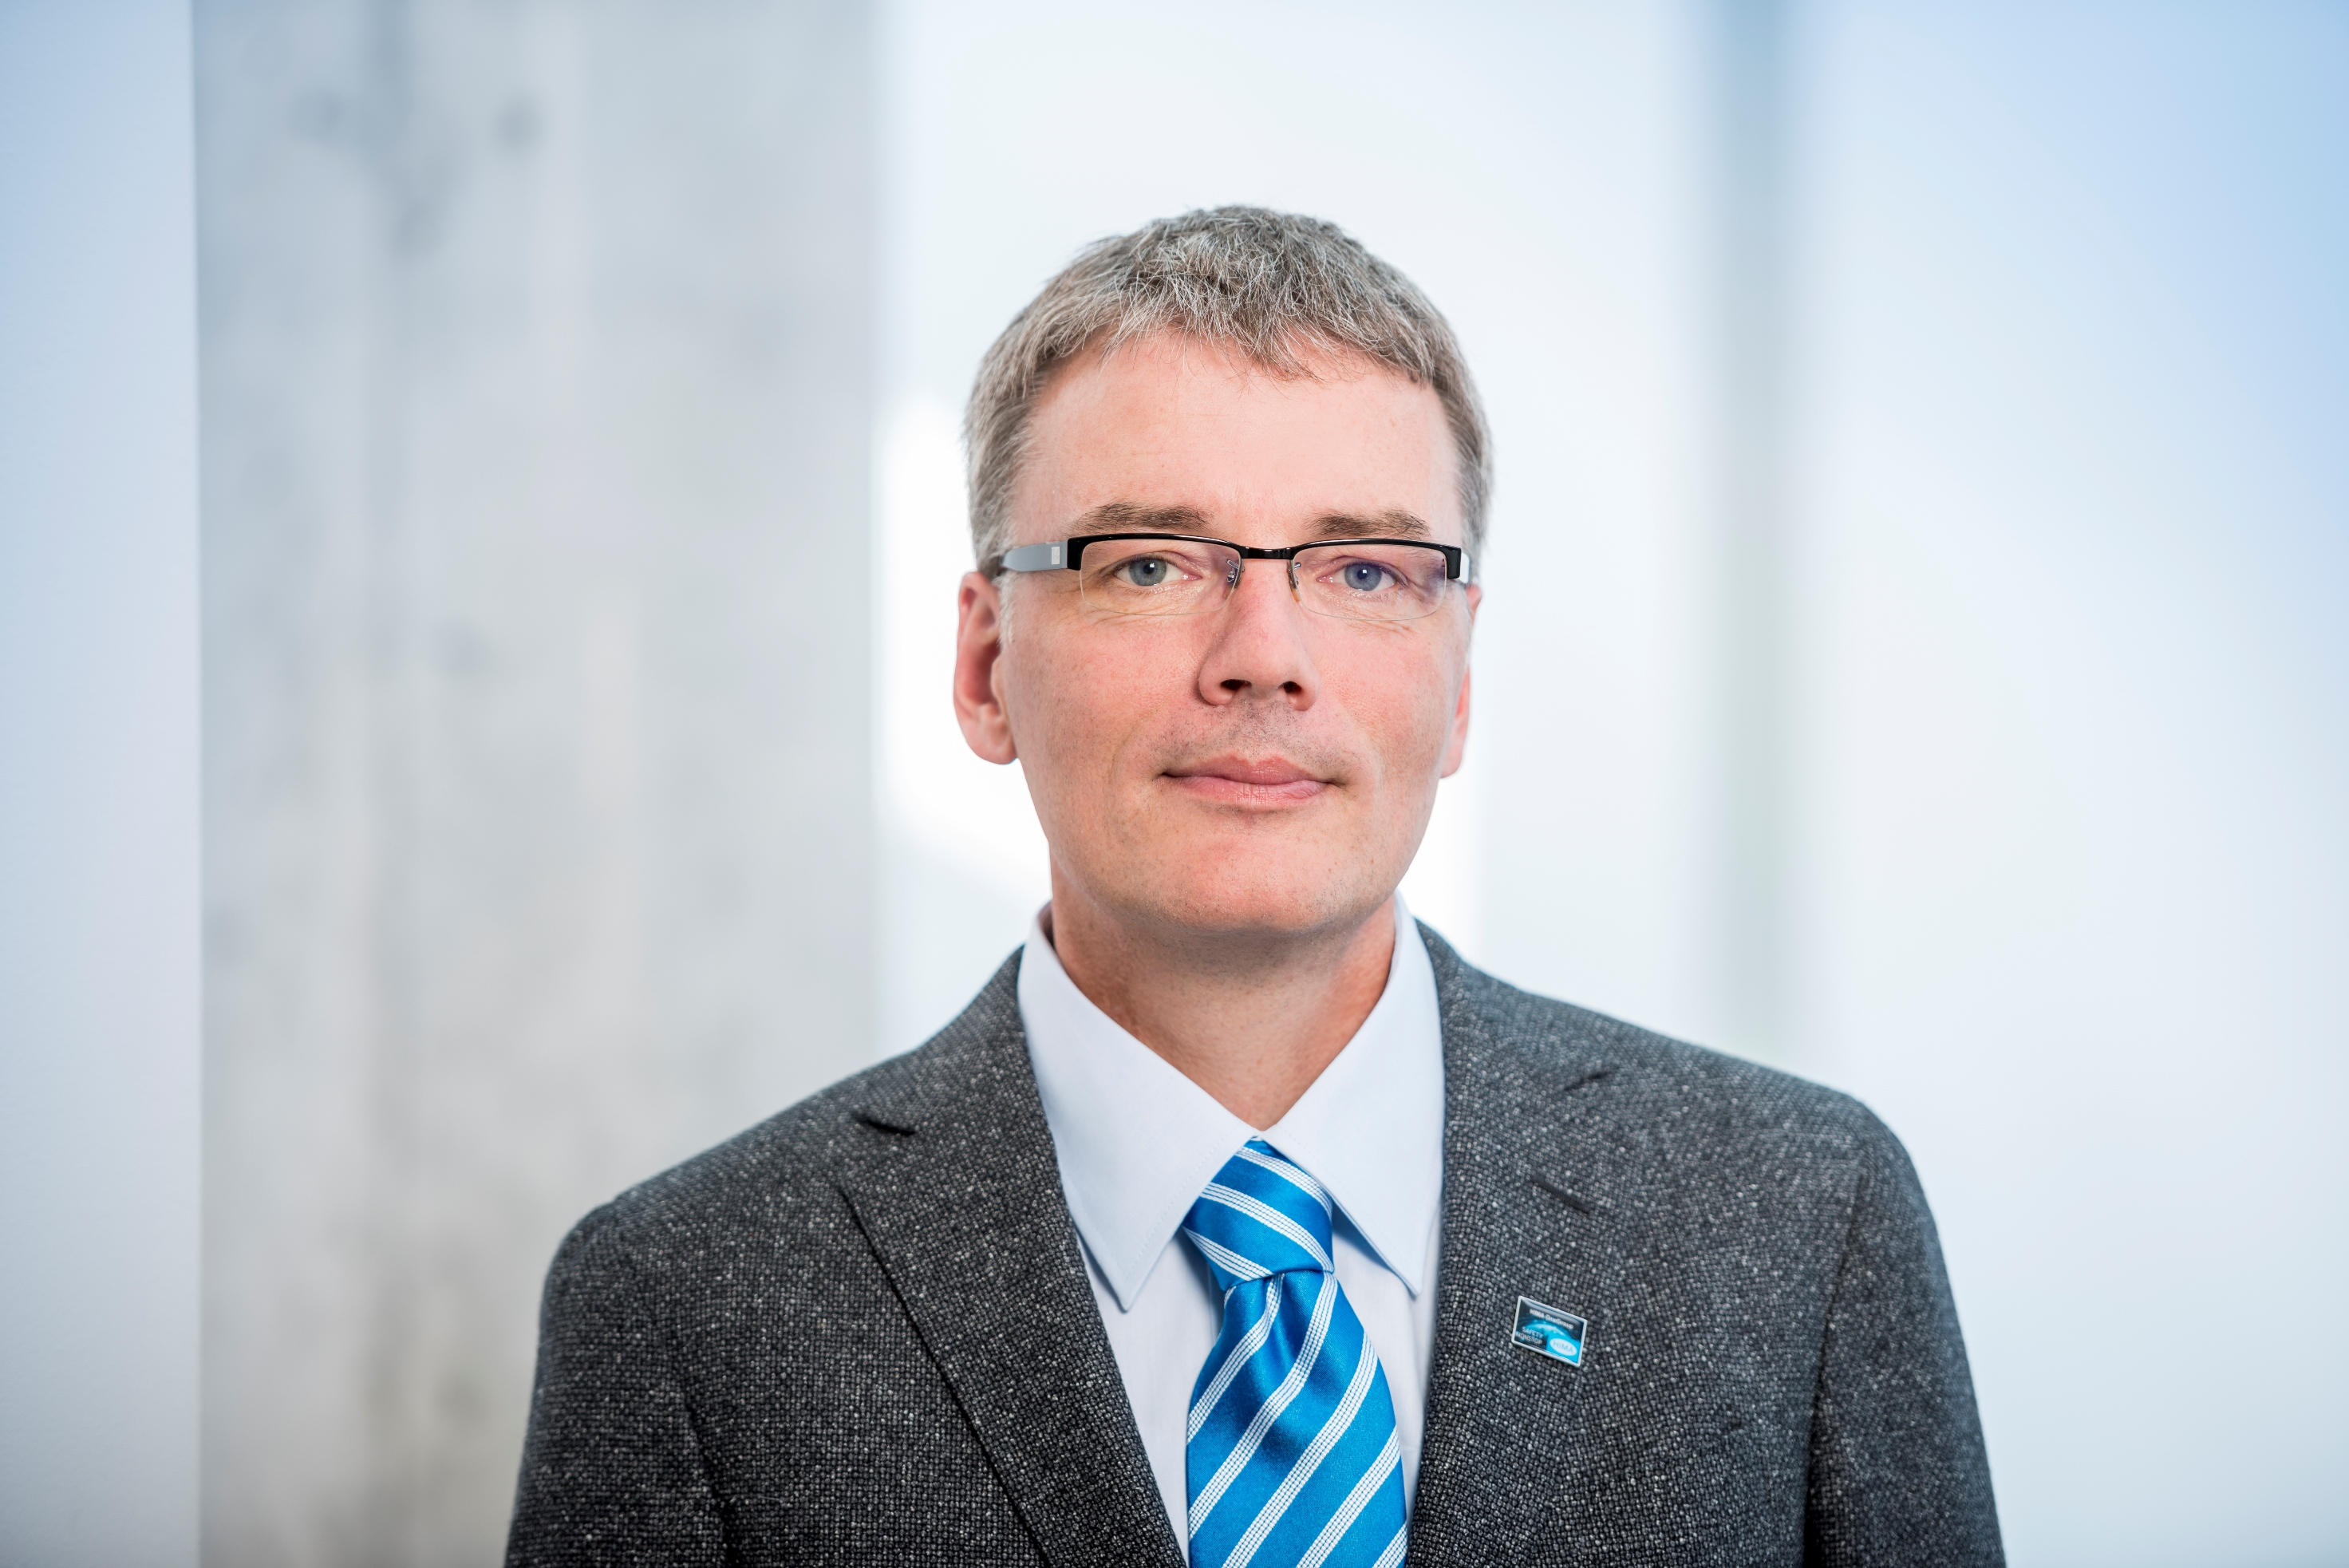 Dr. Alexander Horch ist Vice President Research, Development & Product Management bei Hima